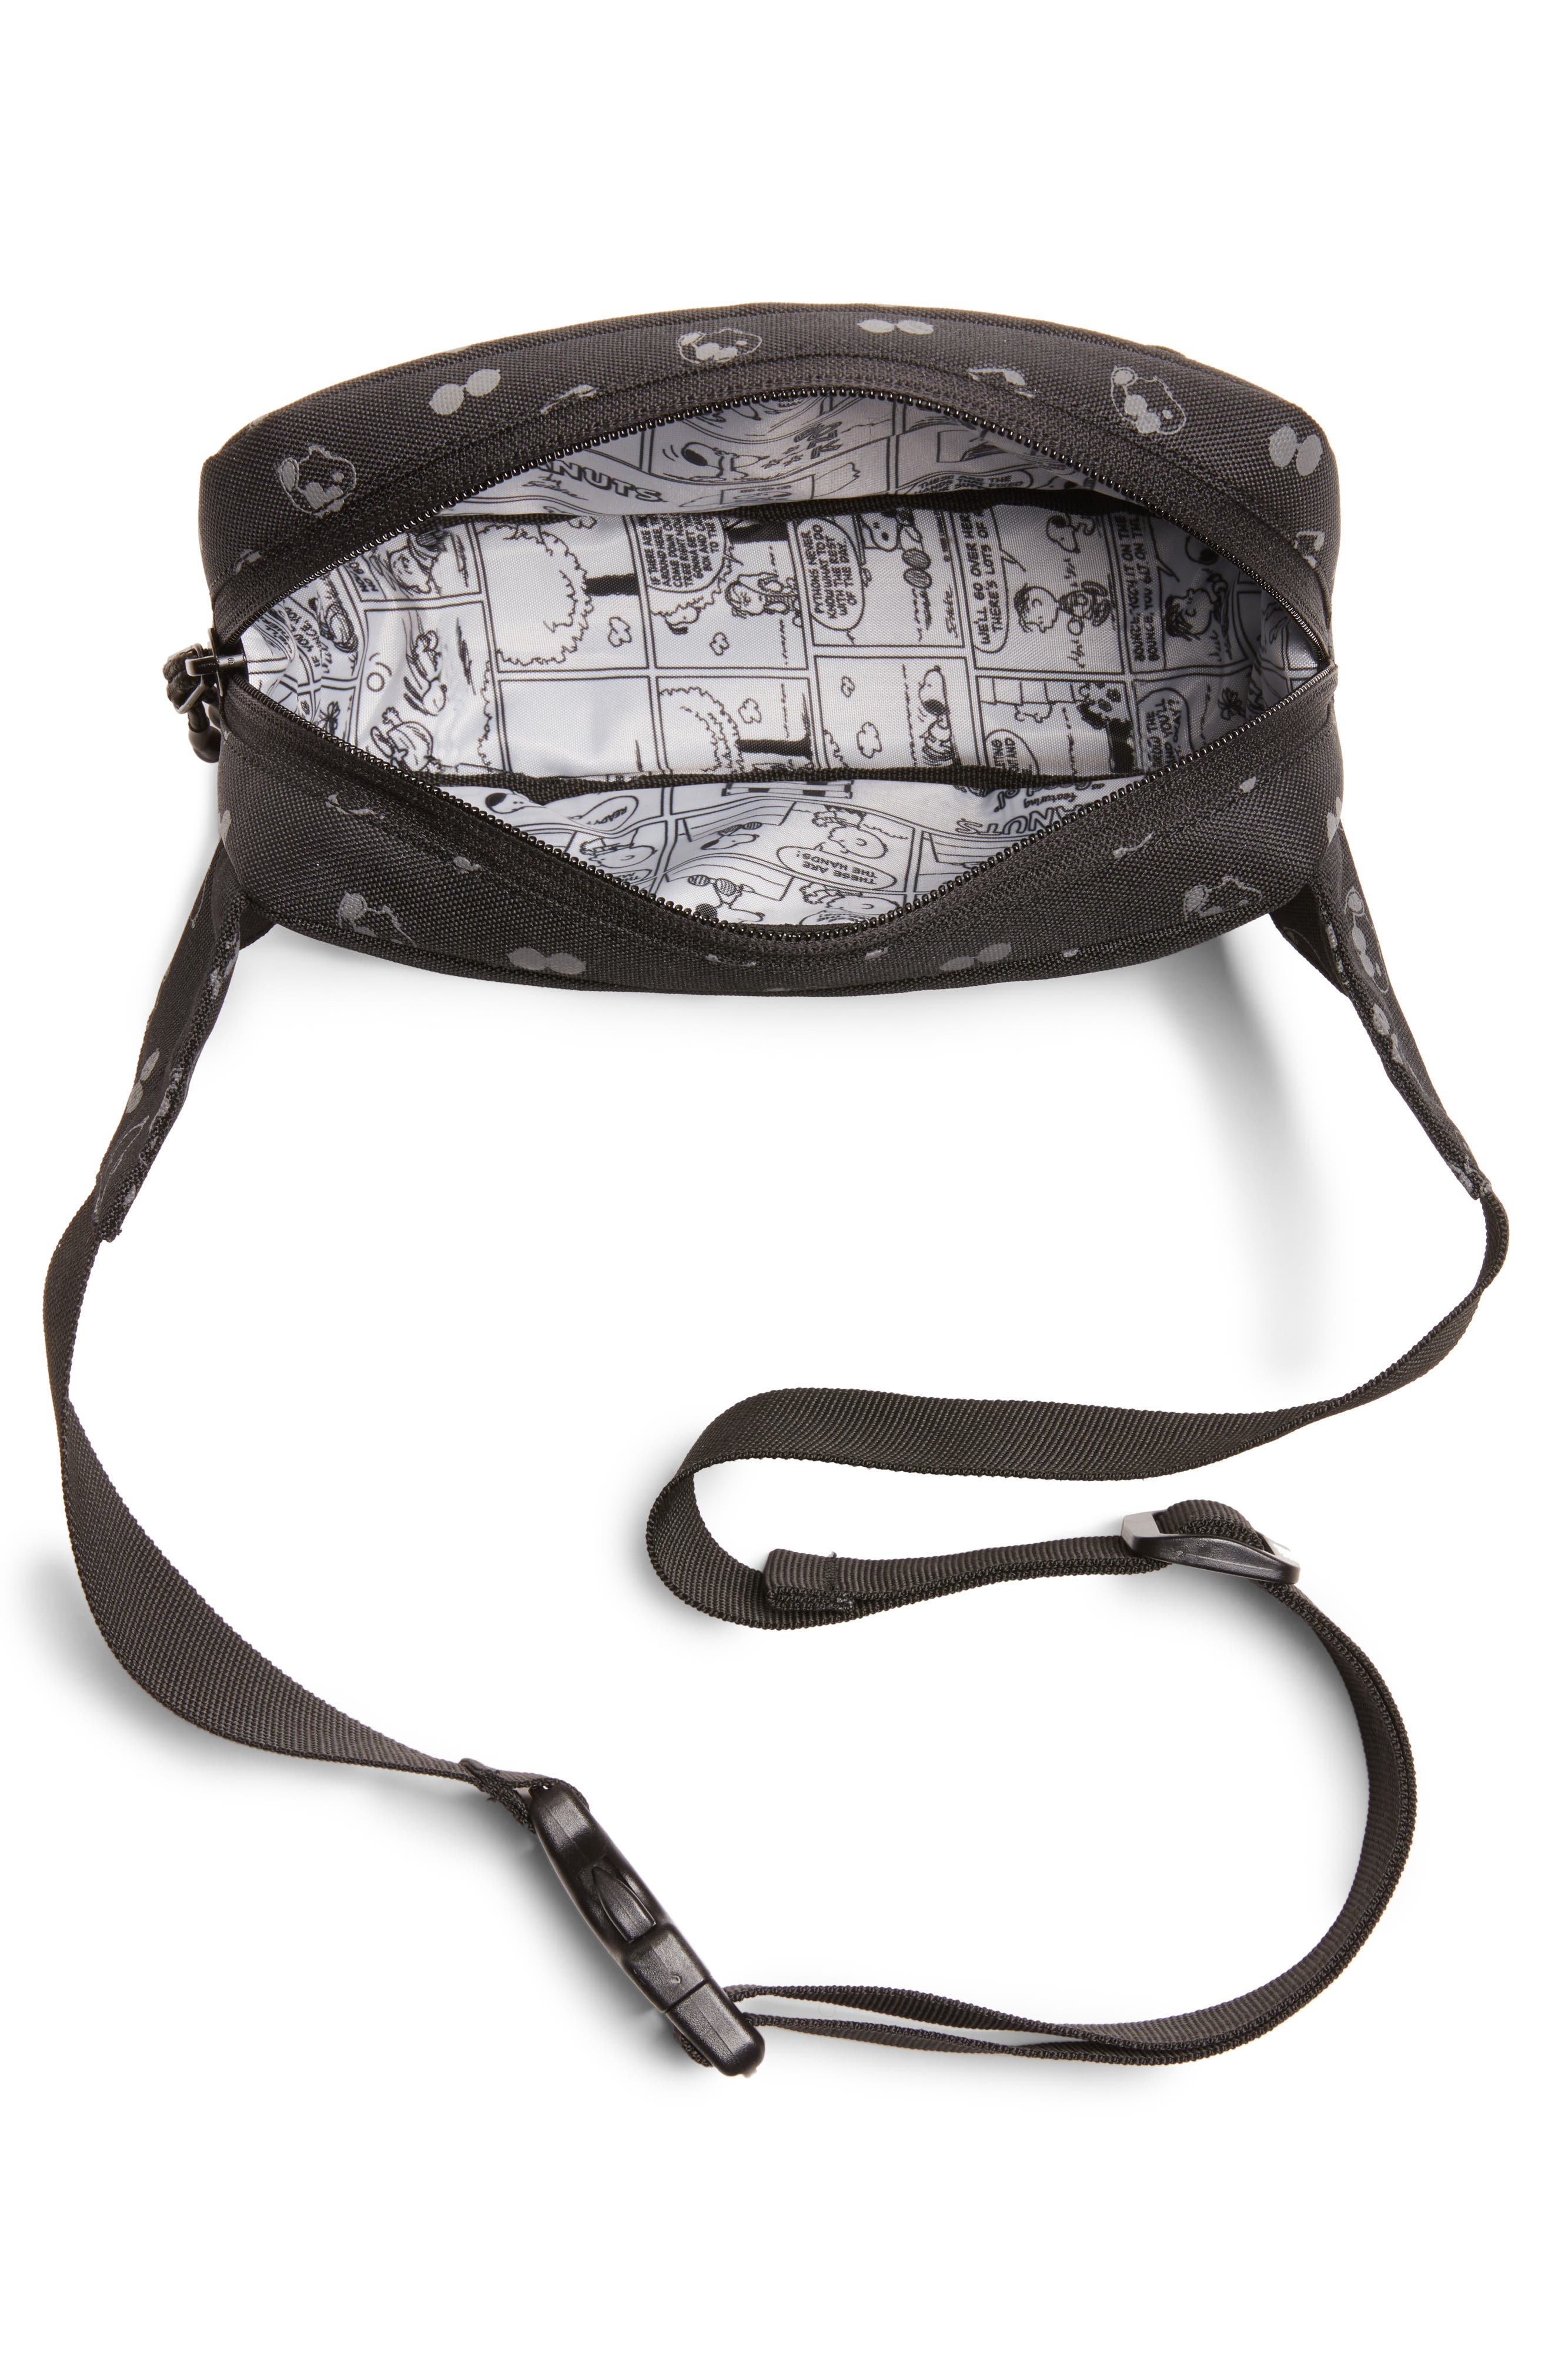 Alternate Image 3  - HEX x Peanuts Water Resistant Waist Pack (Limited Edition) (Nordstrom Exclusive)